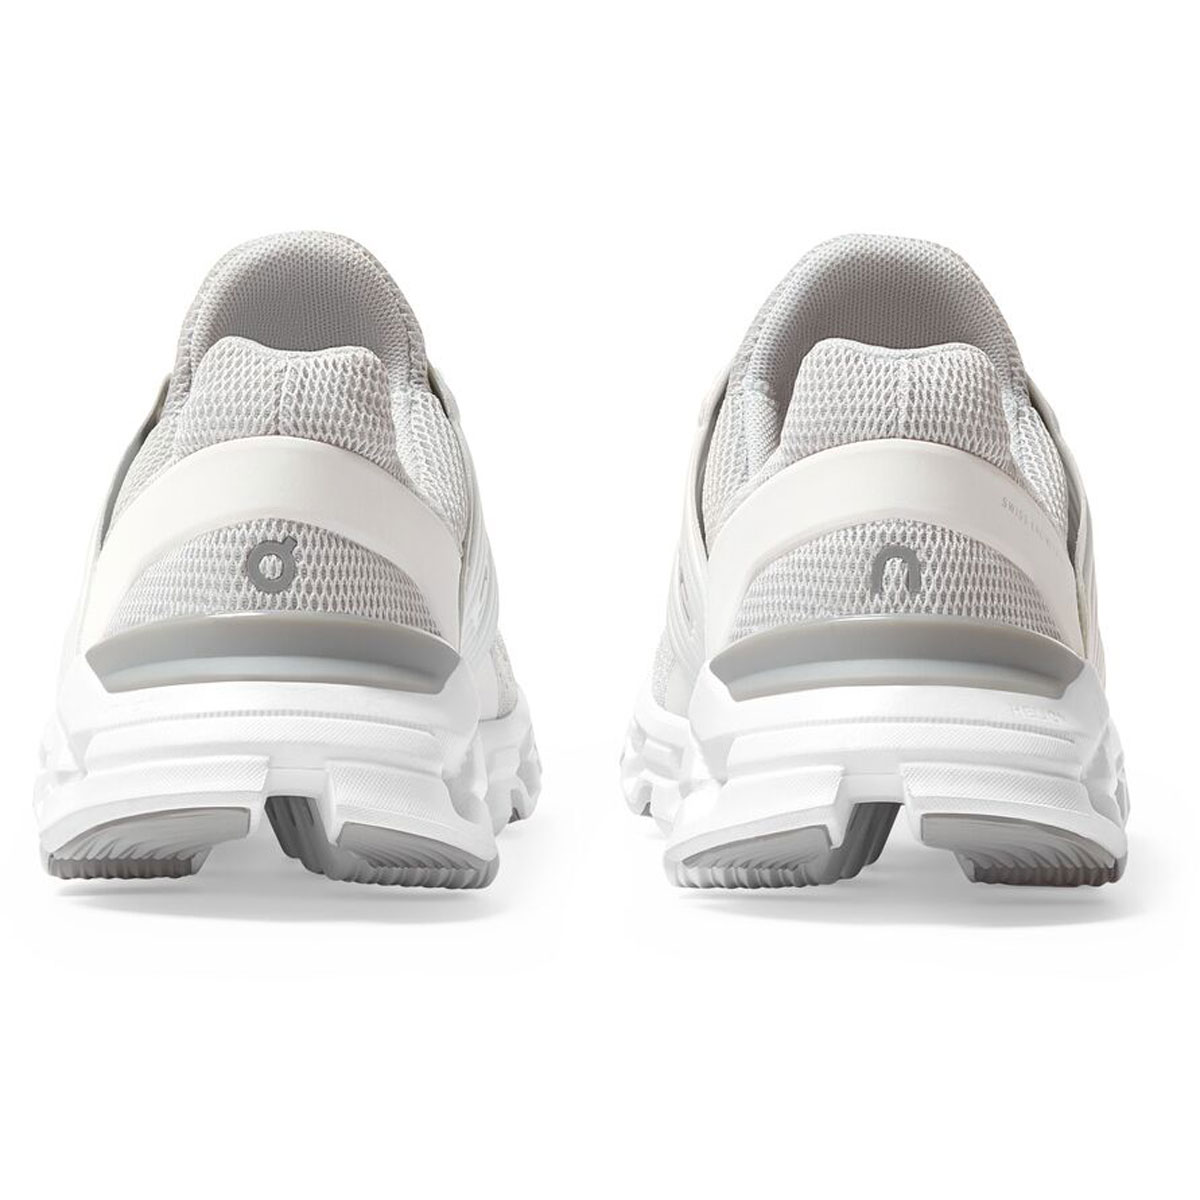 Women's On Cloudswift 2.0 Running Shoe - Color: Glacier/White - Size: 5 - Width: Regular, Glacier/White, large, image 3